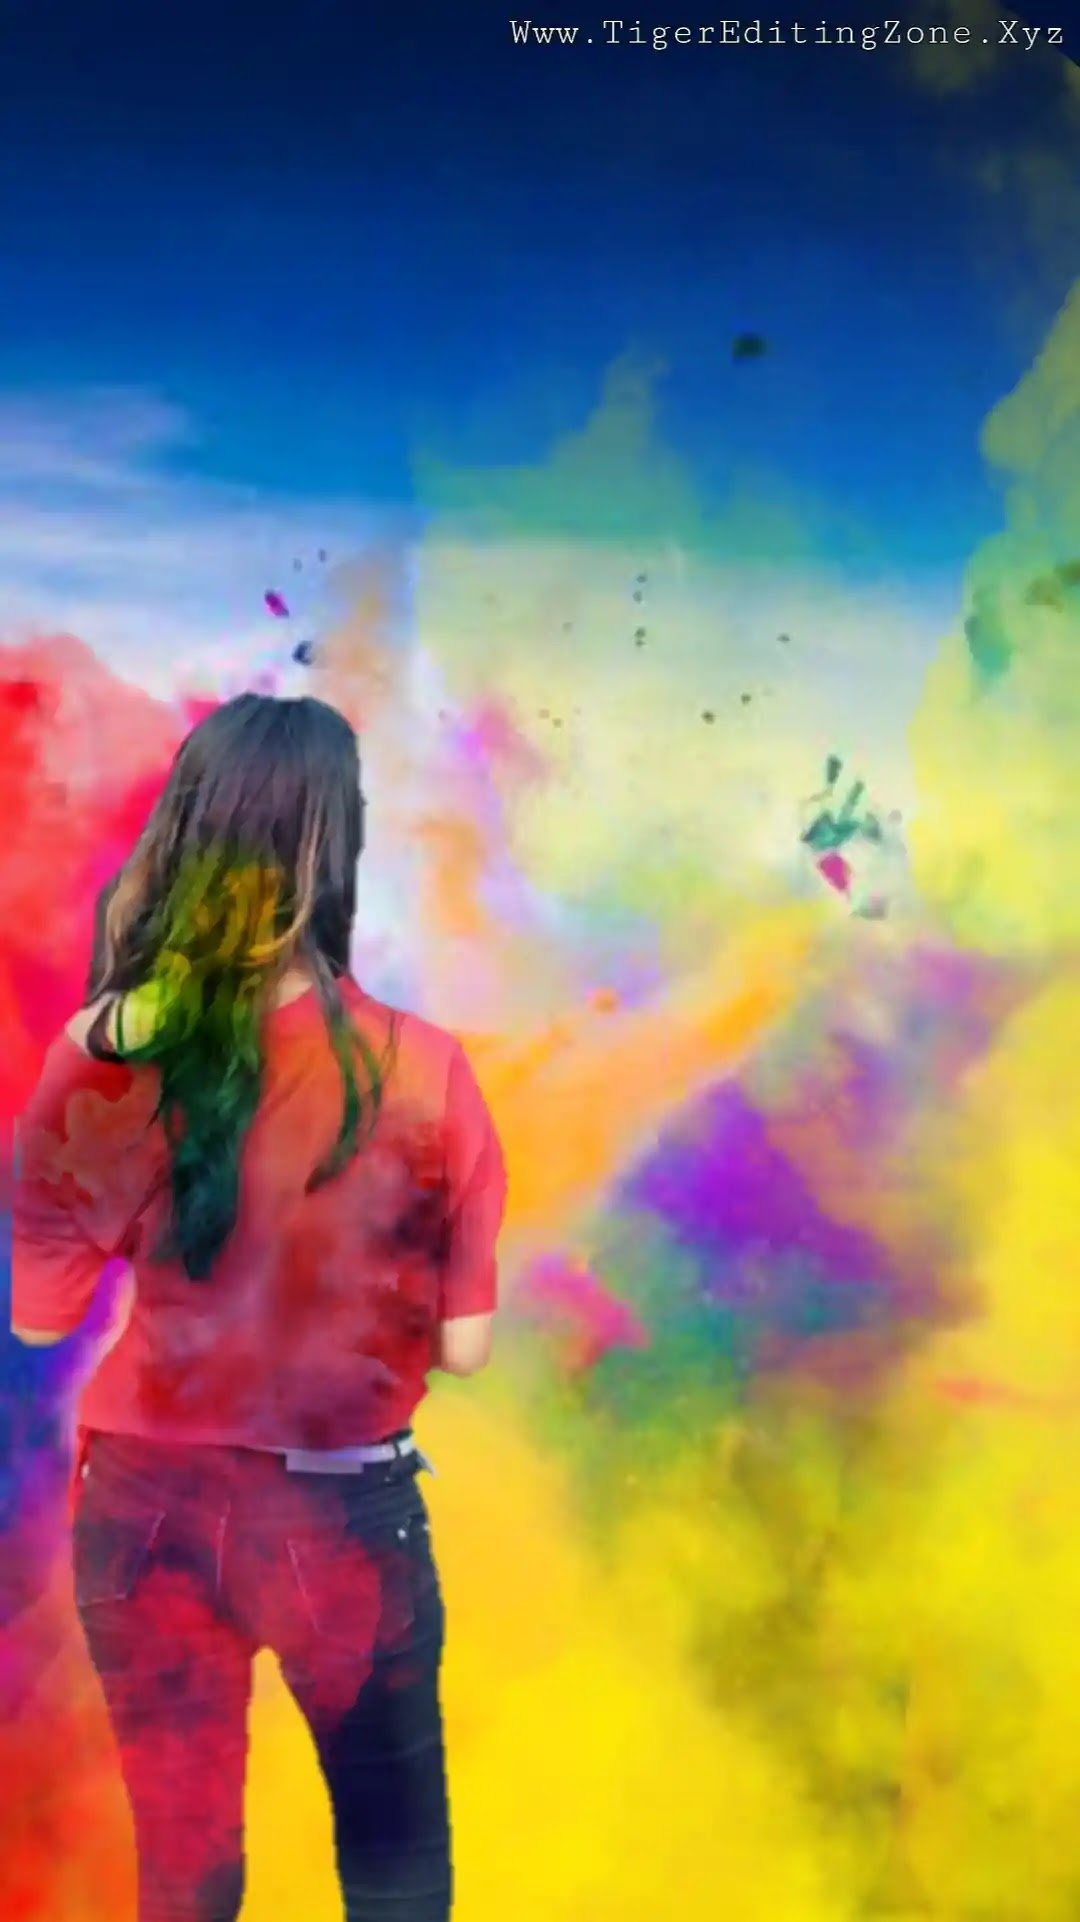 Happy Holi Photo Editing Backgrounds for PicsArt   Happy Holi Backgrounds HD Download 2021